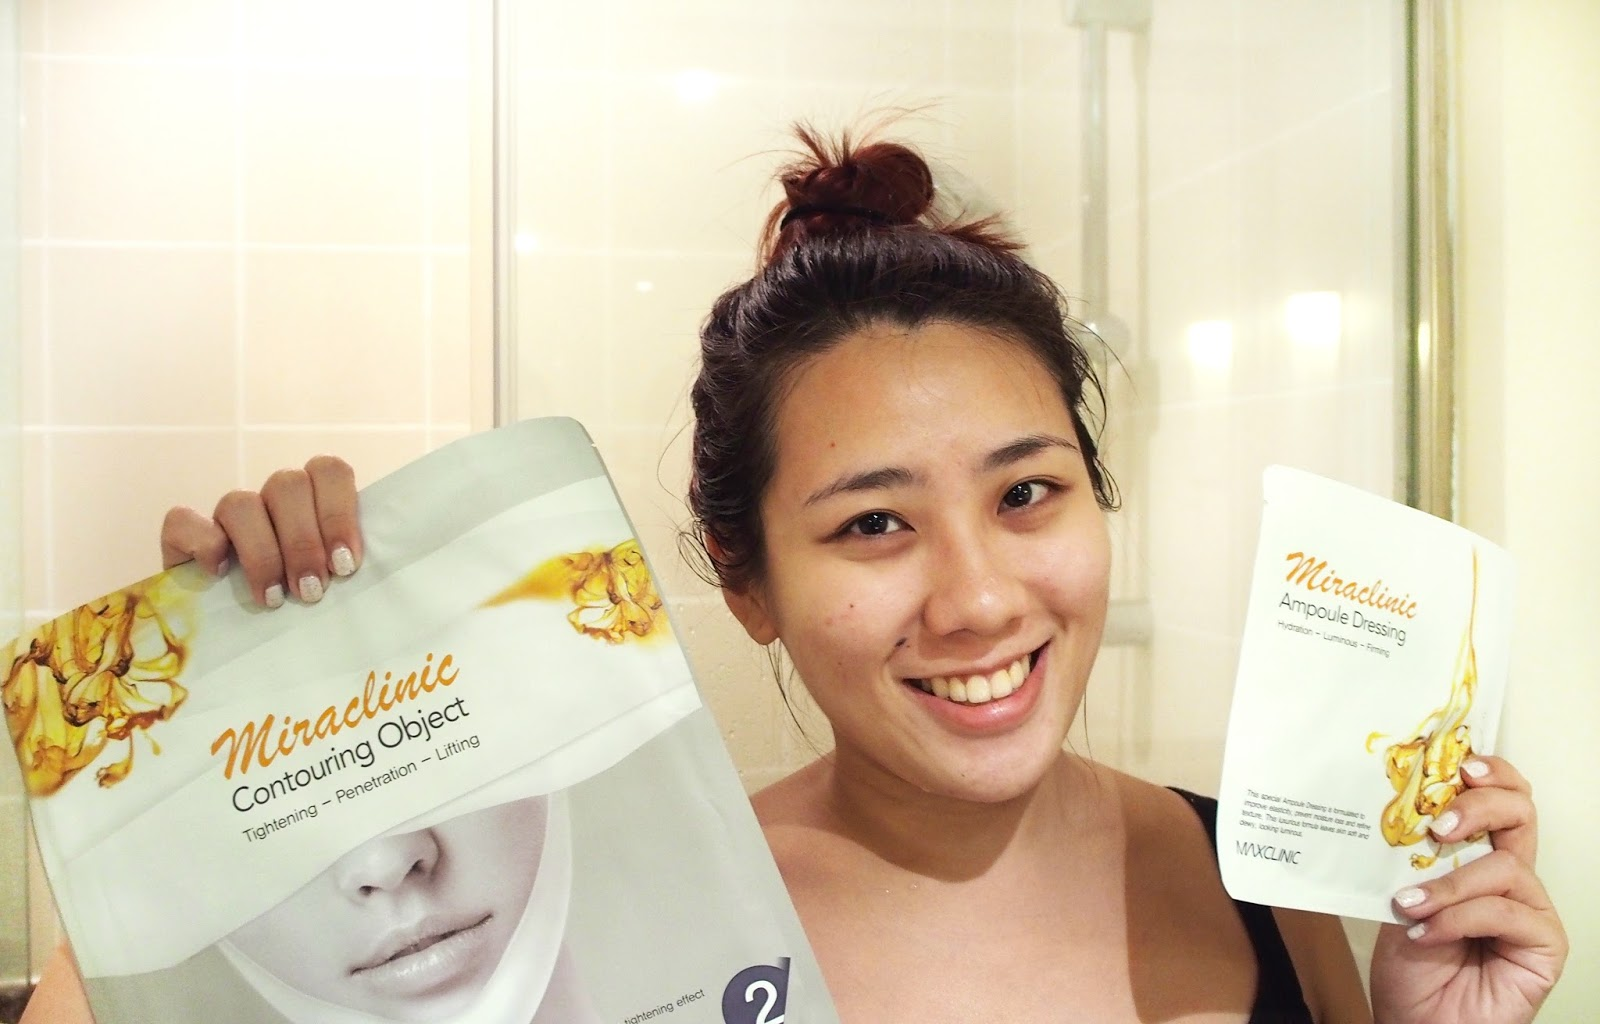 Maxclinic Miraclinic Ampoule Dressing/Contouring Object review